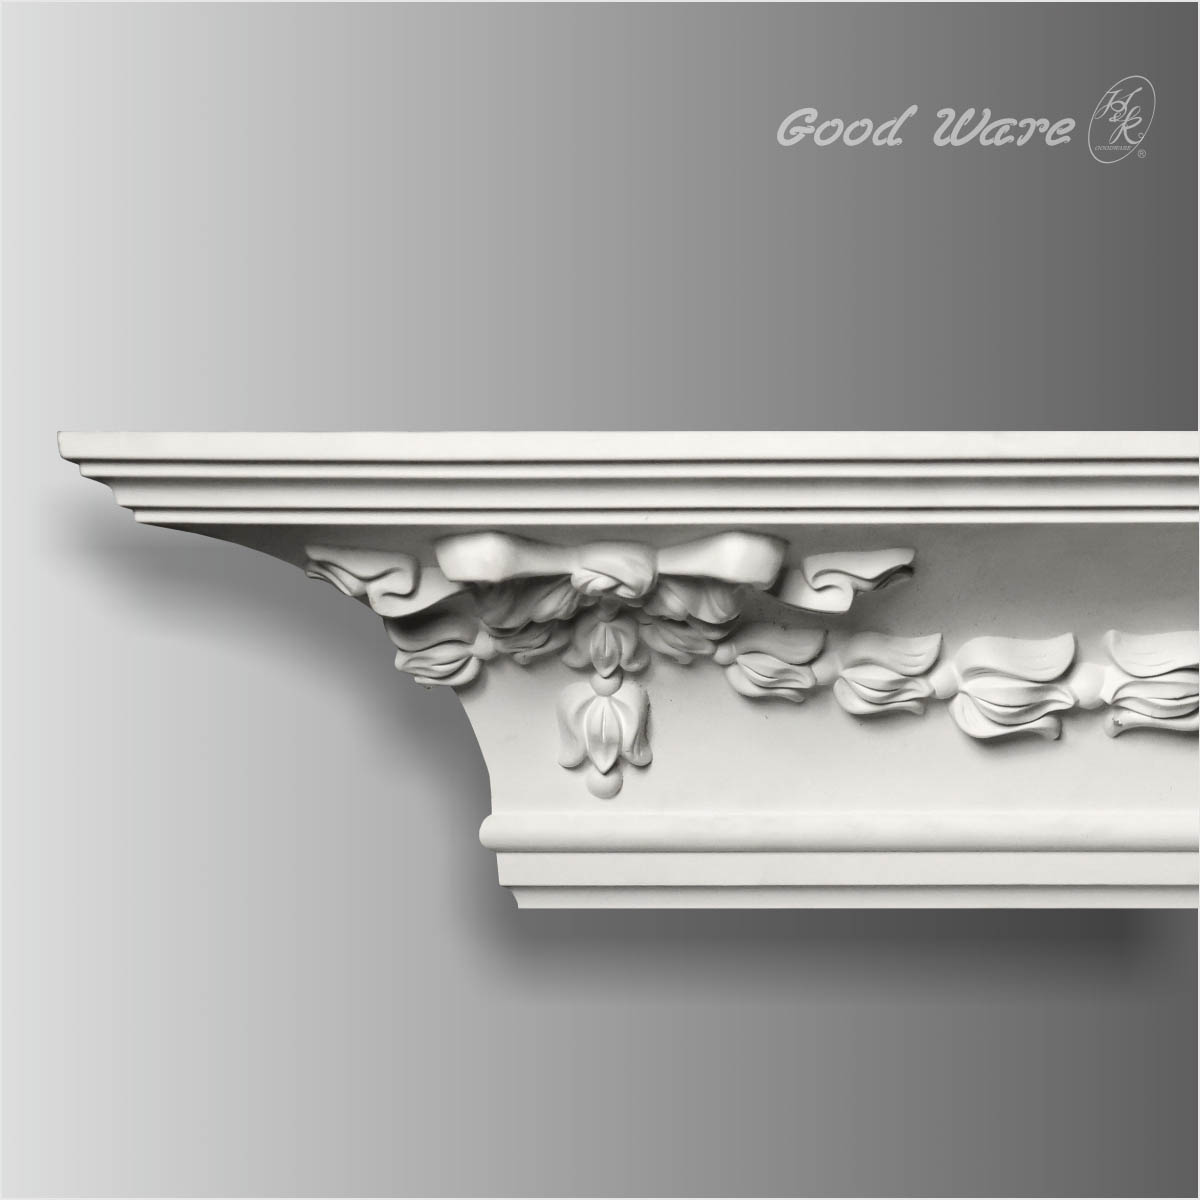 European decorative polyurethane crown molding